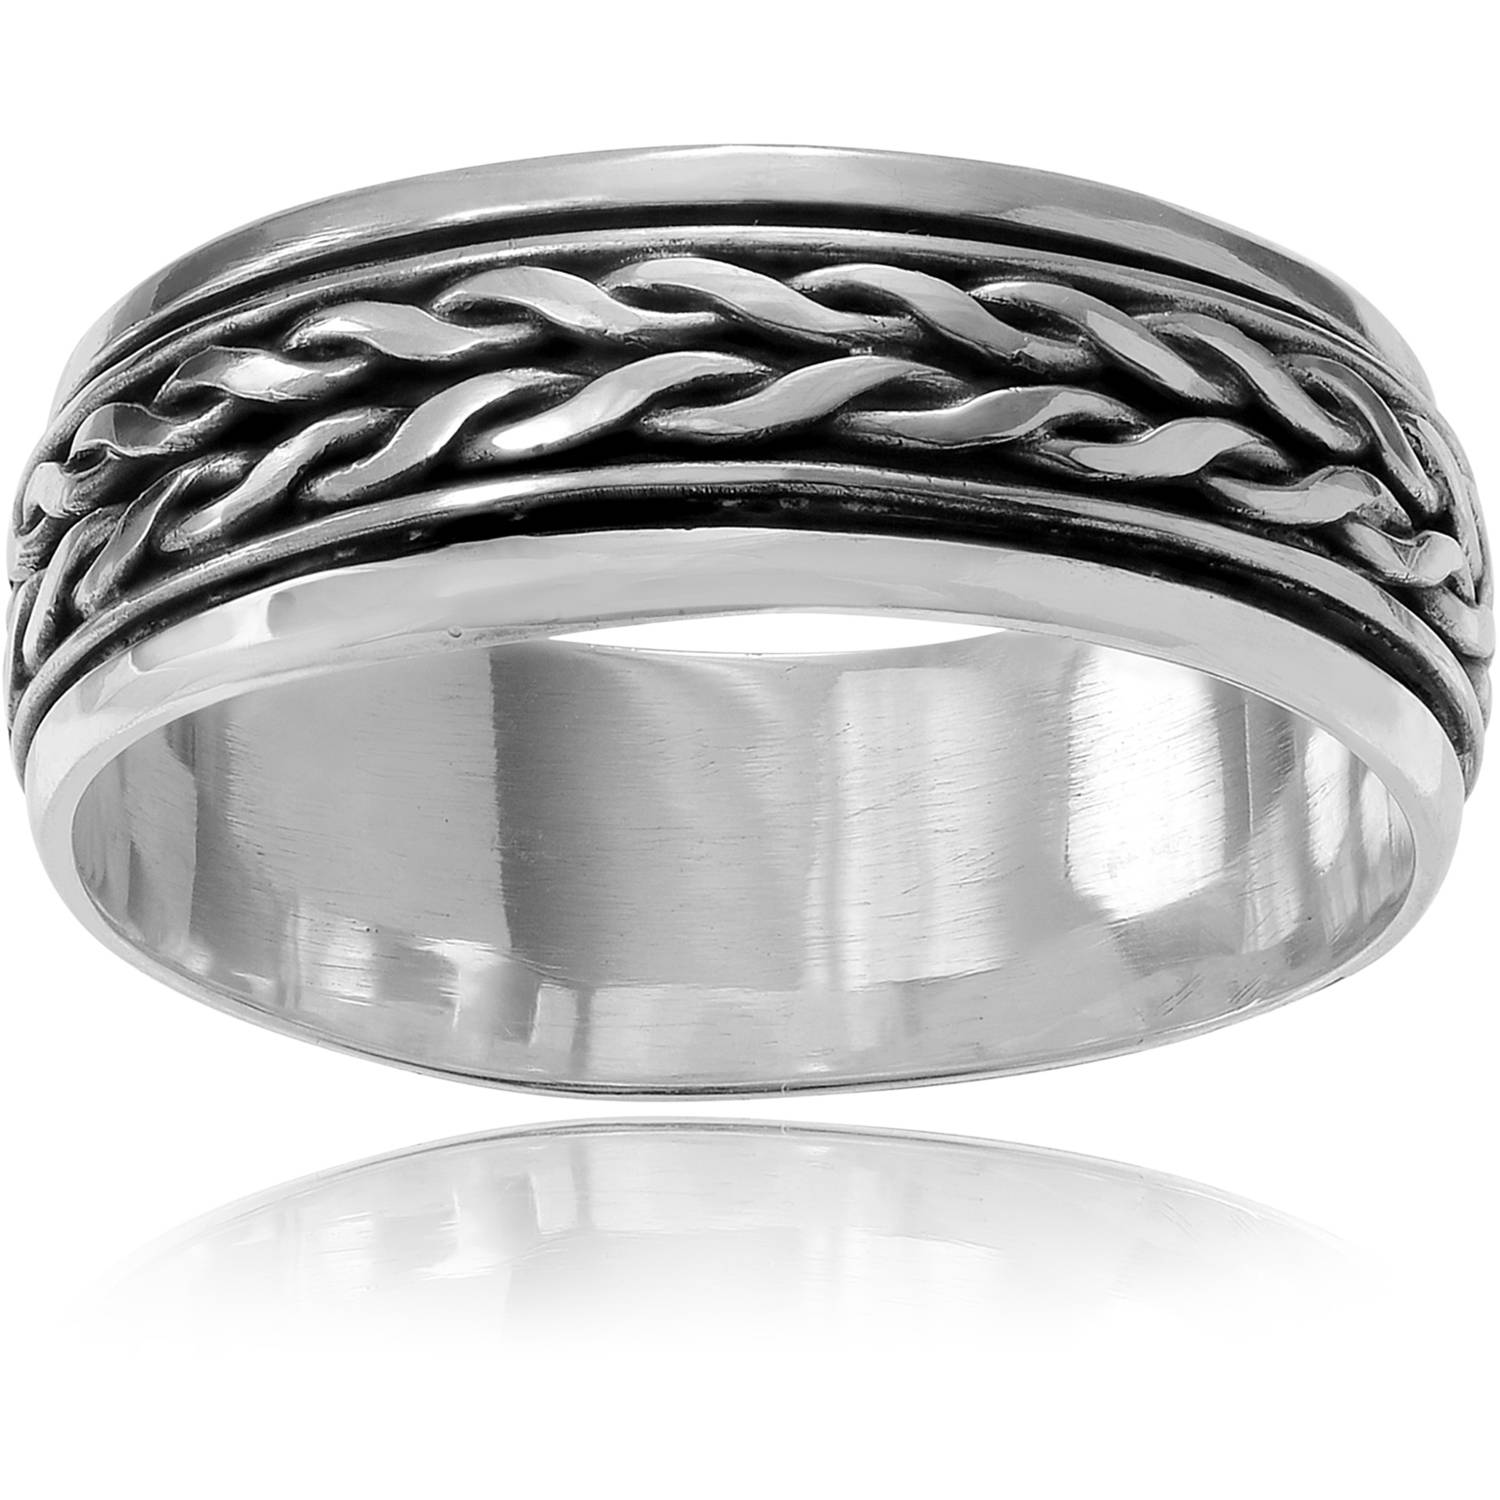 Brinley Co. Women's Sterling Silver Braided Spinner Band Fashion Ring